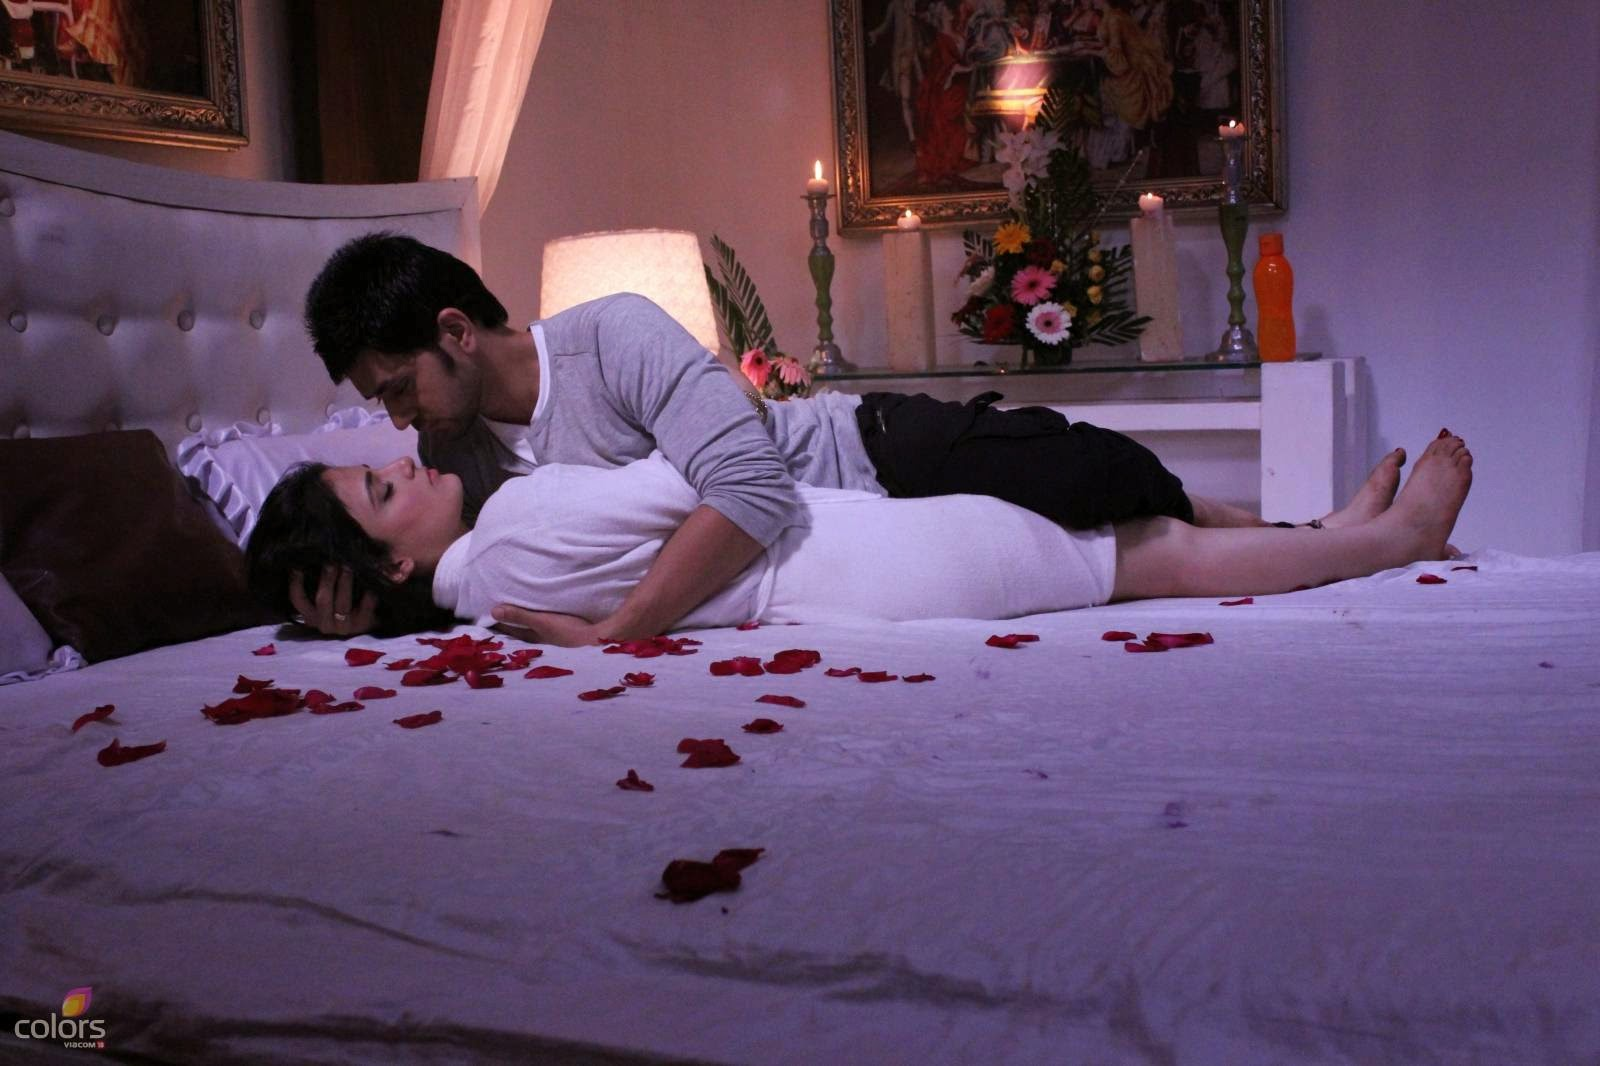 Free download hd wallpapers beautiful ishani ranveer love beautiful ishani ranveer love scenes images hd wallpapers voltagebd Images